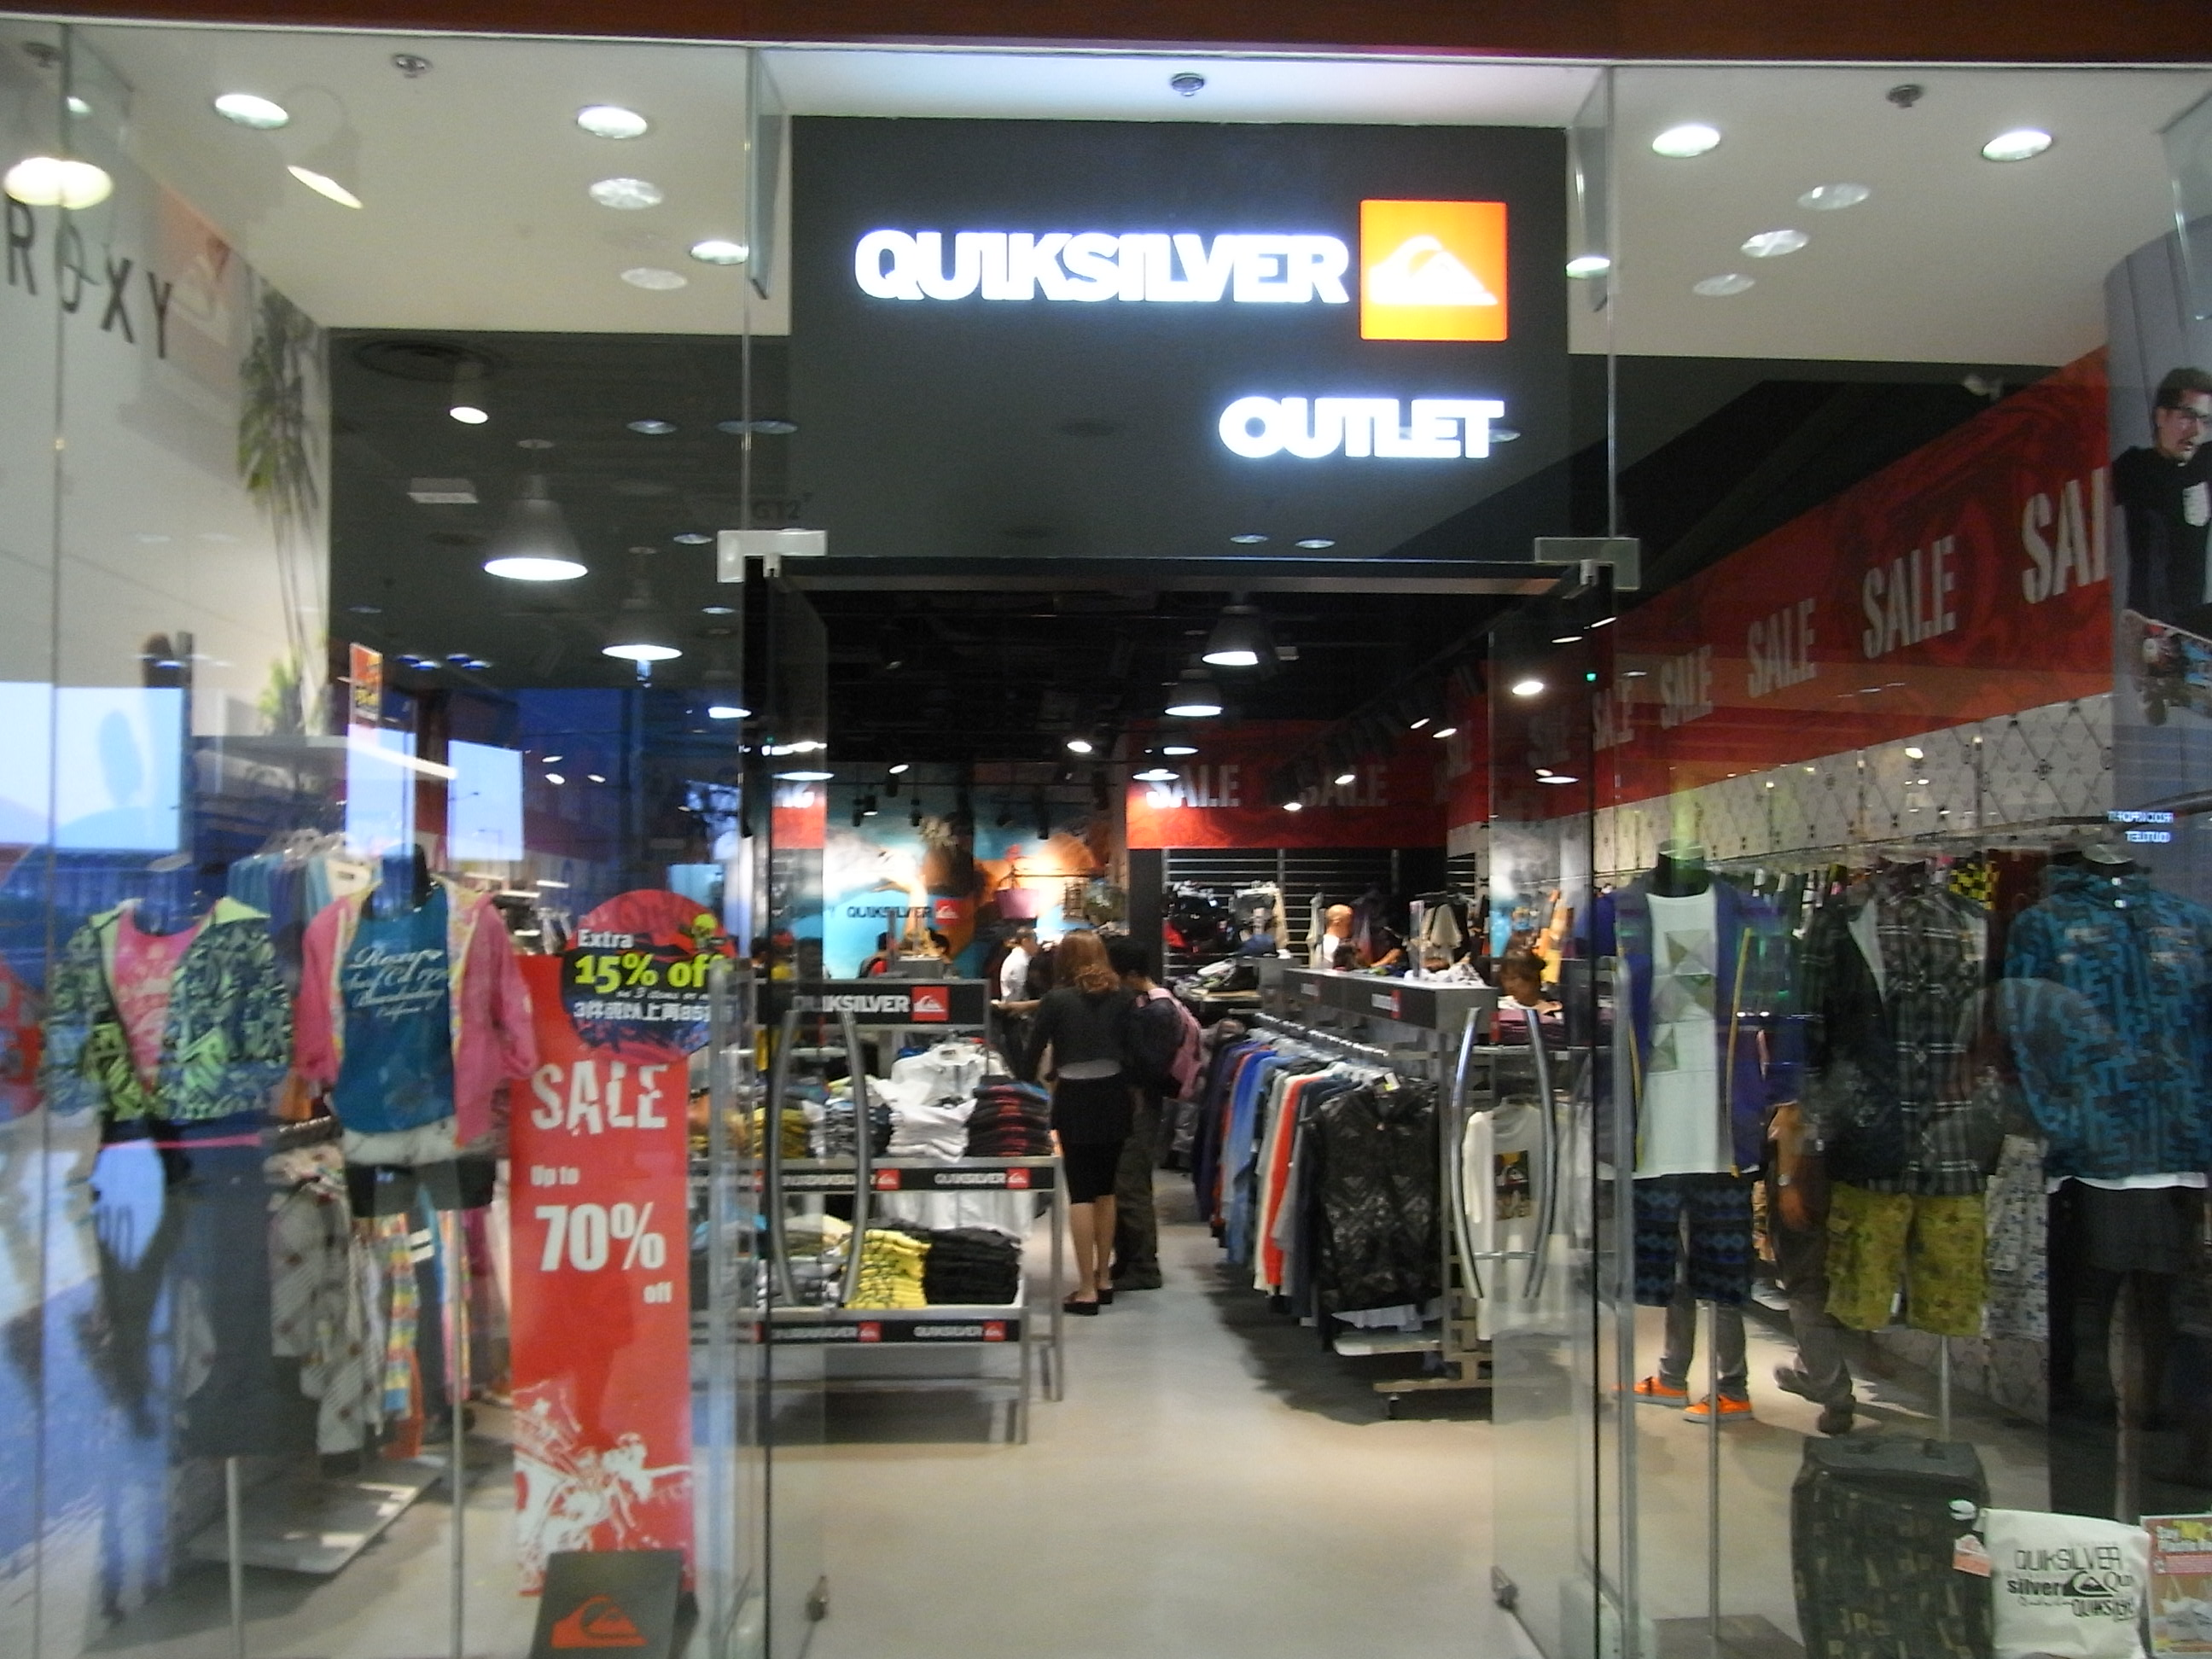 Since , Quiksilver offers high quality snow gear, surf gear, outwear and accessories for men, kids and babies. Surf clothing catalog, live surf and snow report, store locator, event coverage, message board, news and links. For more savings, check out our Quiksilver gift card deals.